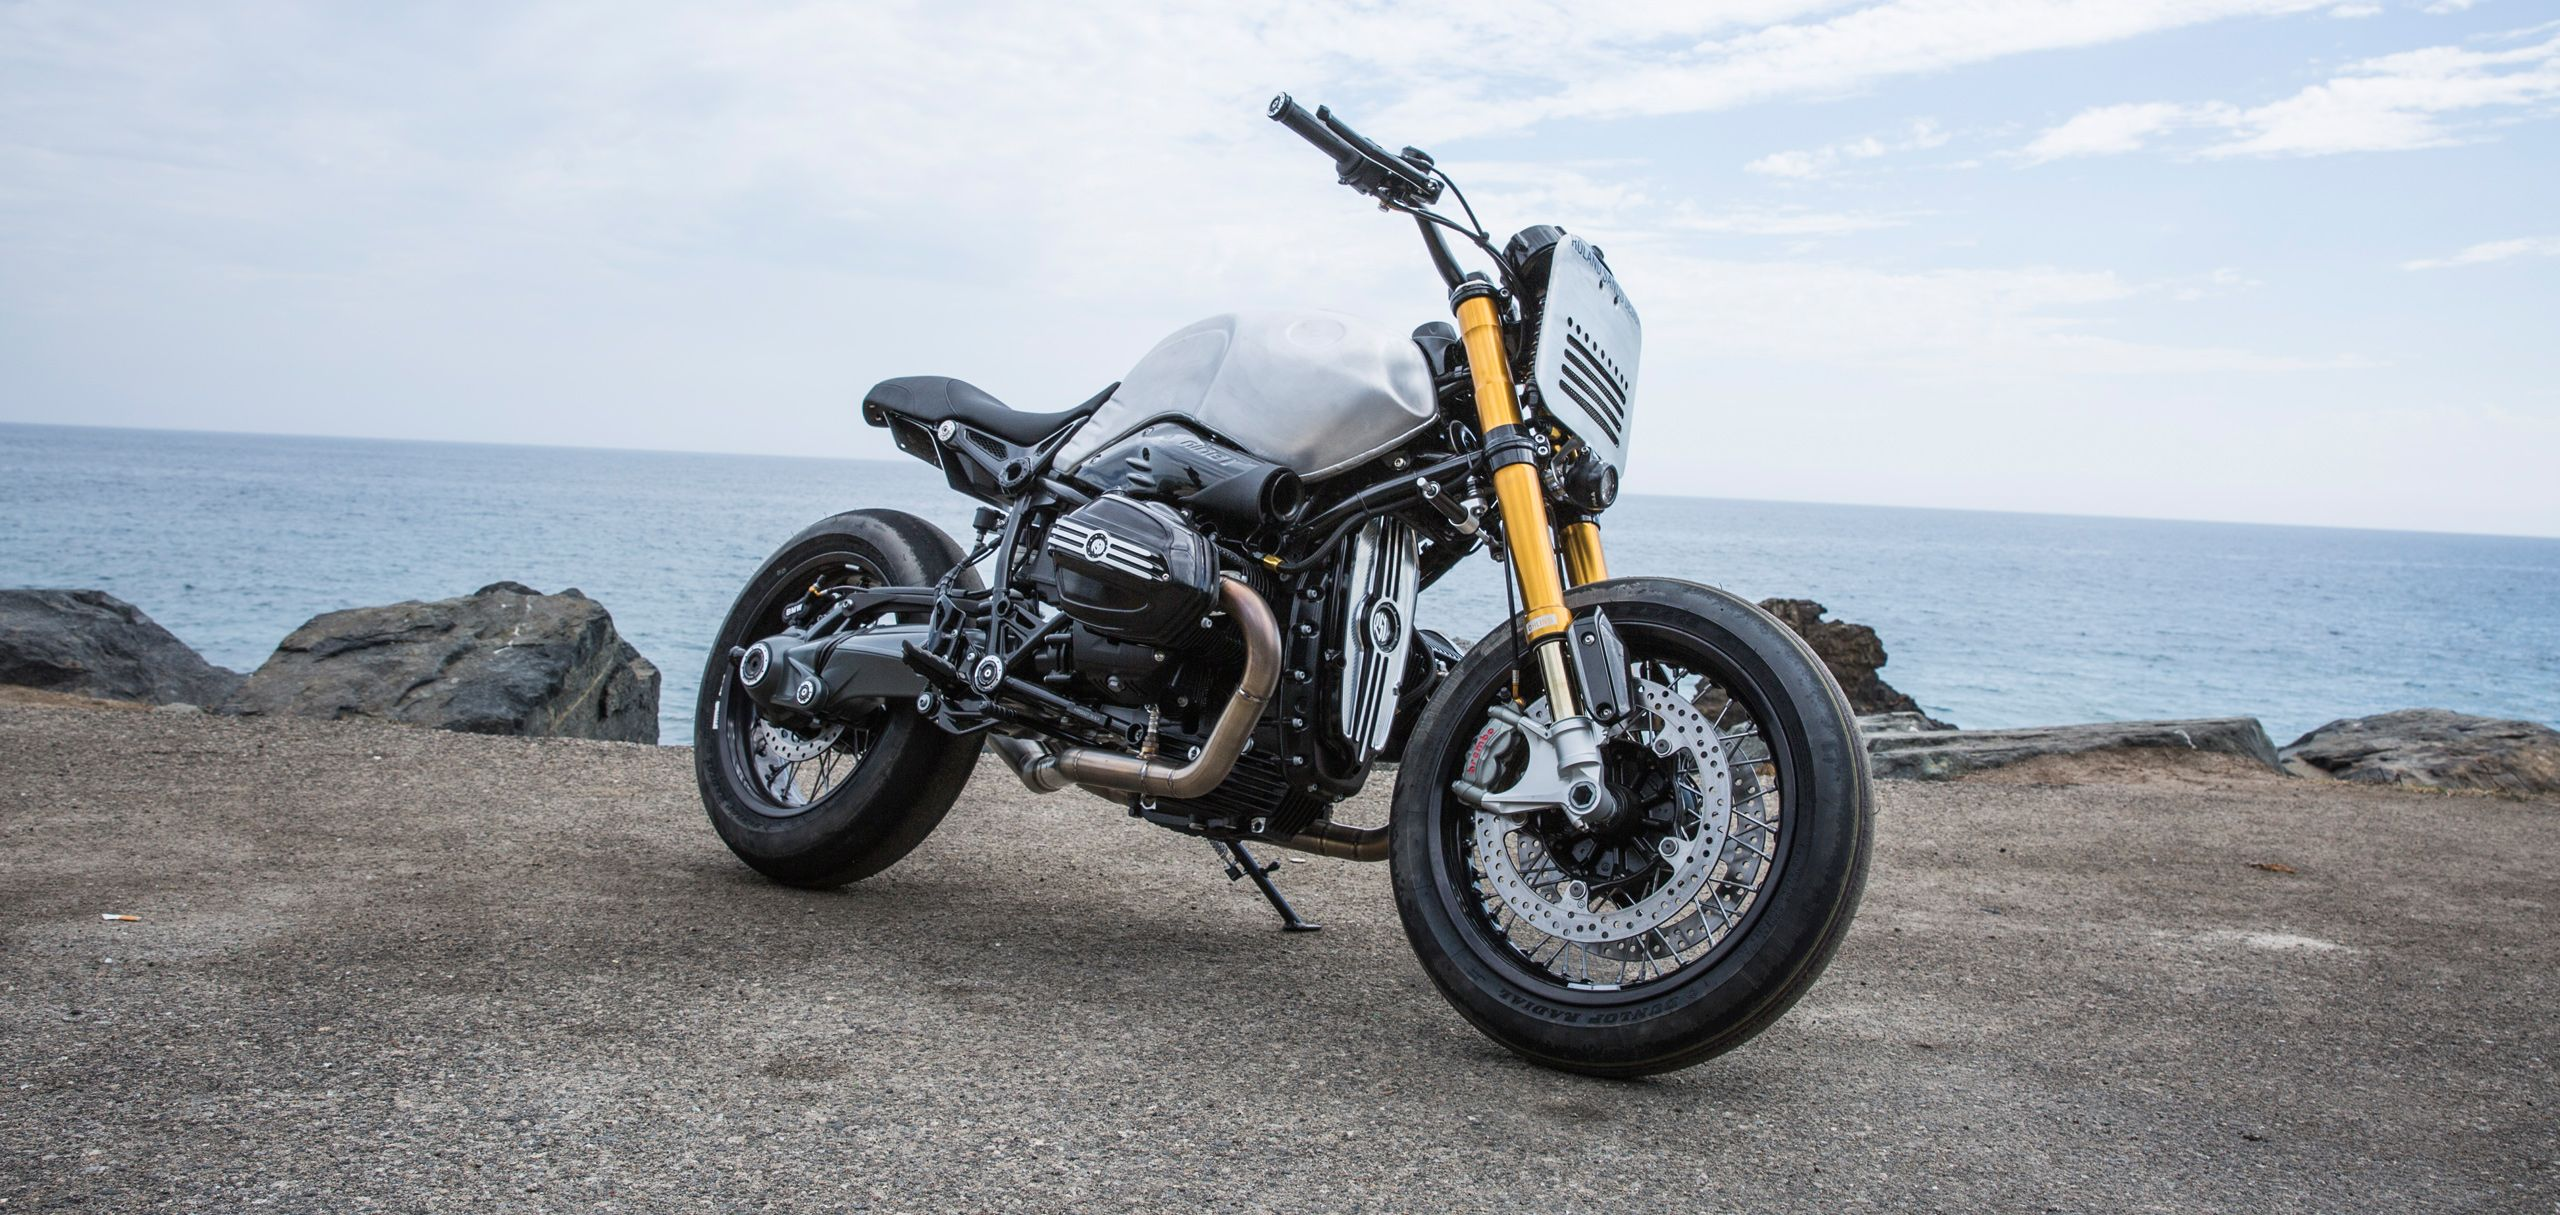 Bikes motorcycle parts and riding gear roland sands design - Kh9 Bmw Rninet Blog Motorcycle Parts And Riding Gear Roland Sands Design